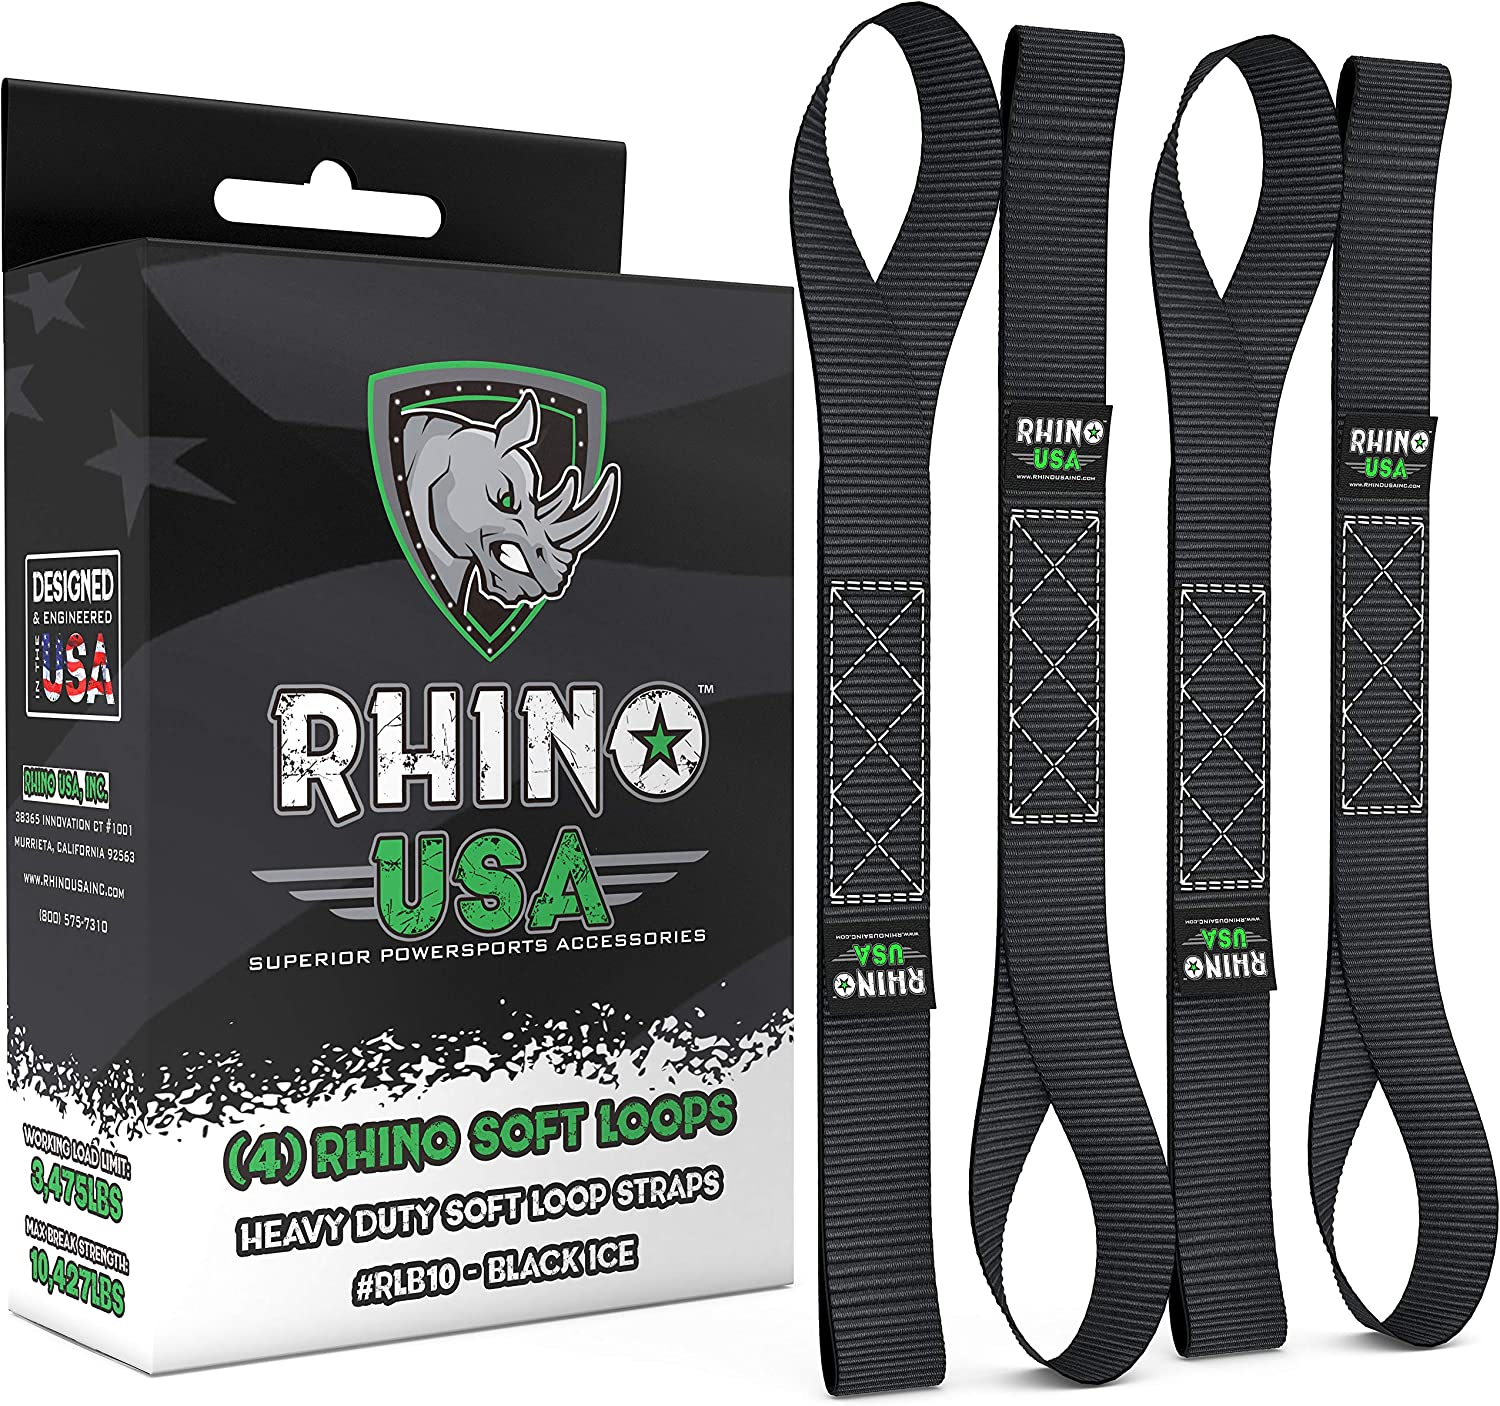 """RHINO USA Soft Loops Motorcycle Tie Down Straps (4pk) - 10,427lb Max Break Strength 1.7"""" x 17"""" Heavy Duty Tie Downs for use with Ratchet Strap - Secure Trailering of Motorcycles, Kayak, Jeep, ATV, UTV: Automotive"""